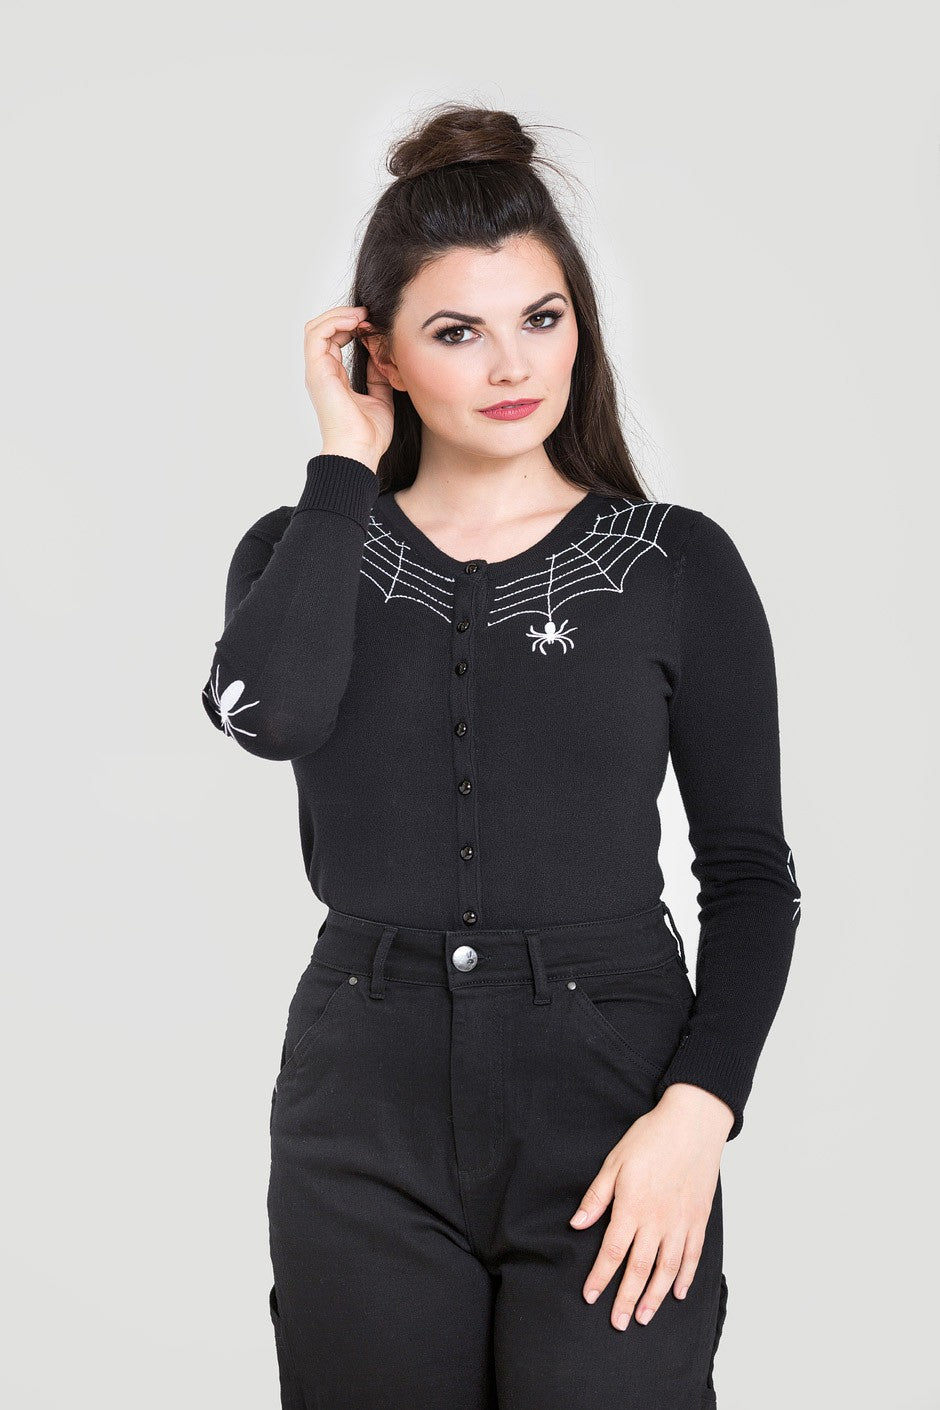 Spider Web Cardi Black  XS - 4XL